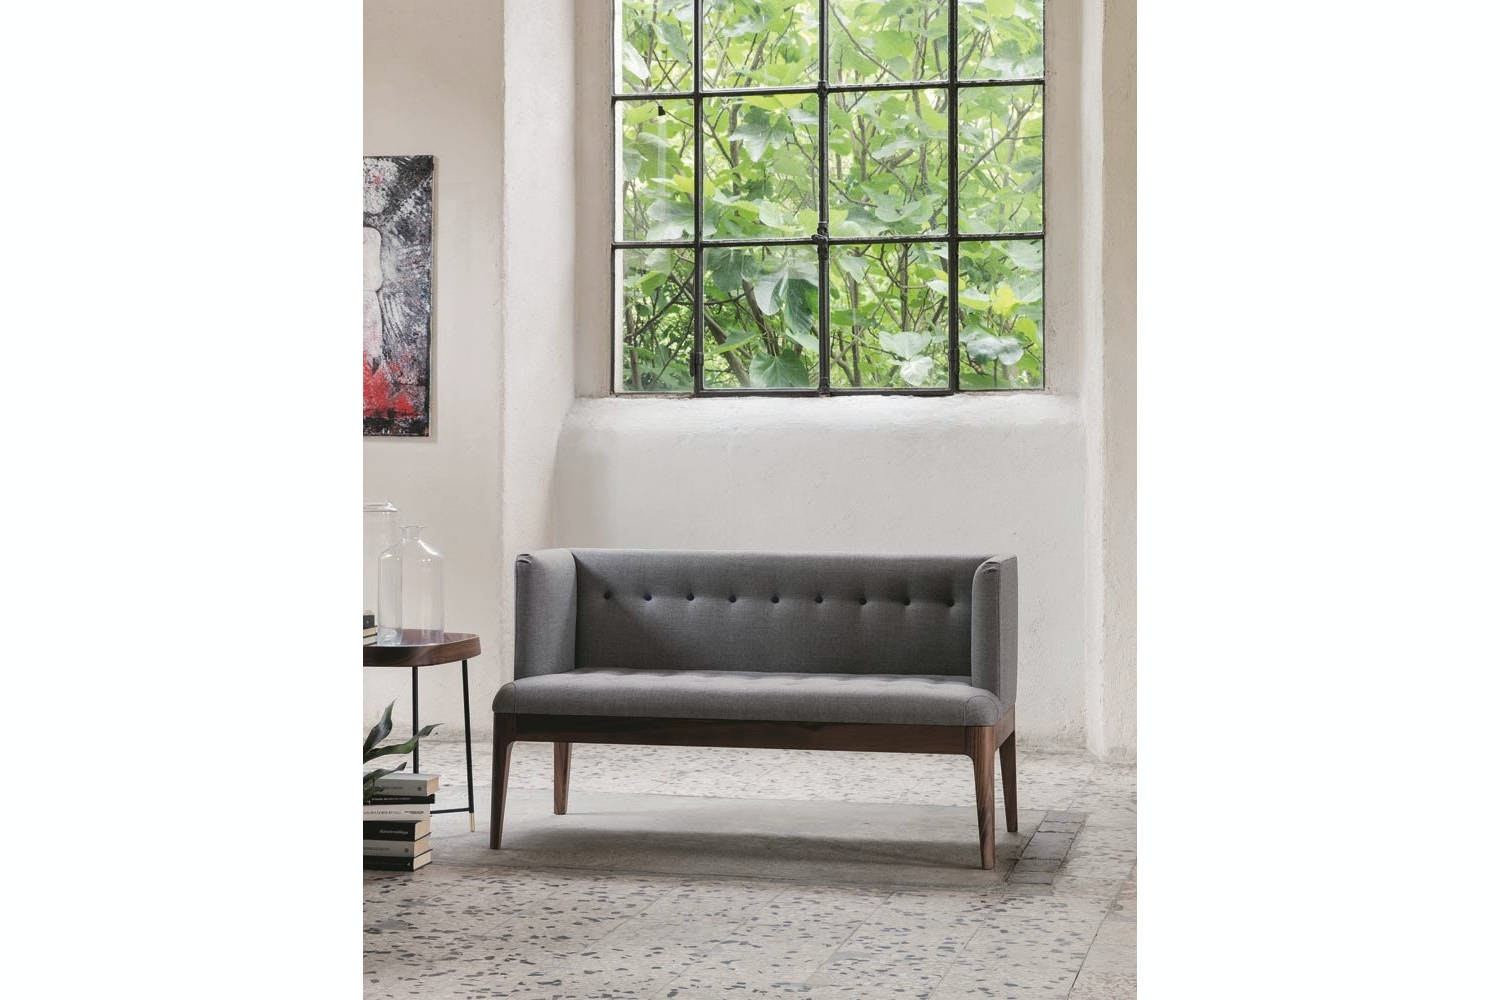 Wendy Sofa by C. Ballabio for Porada